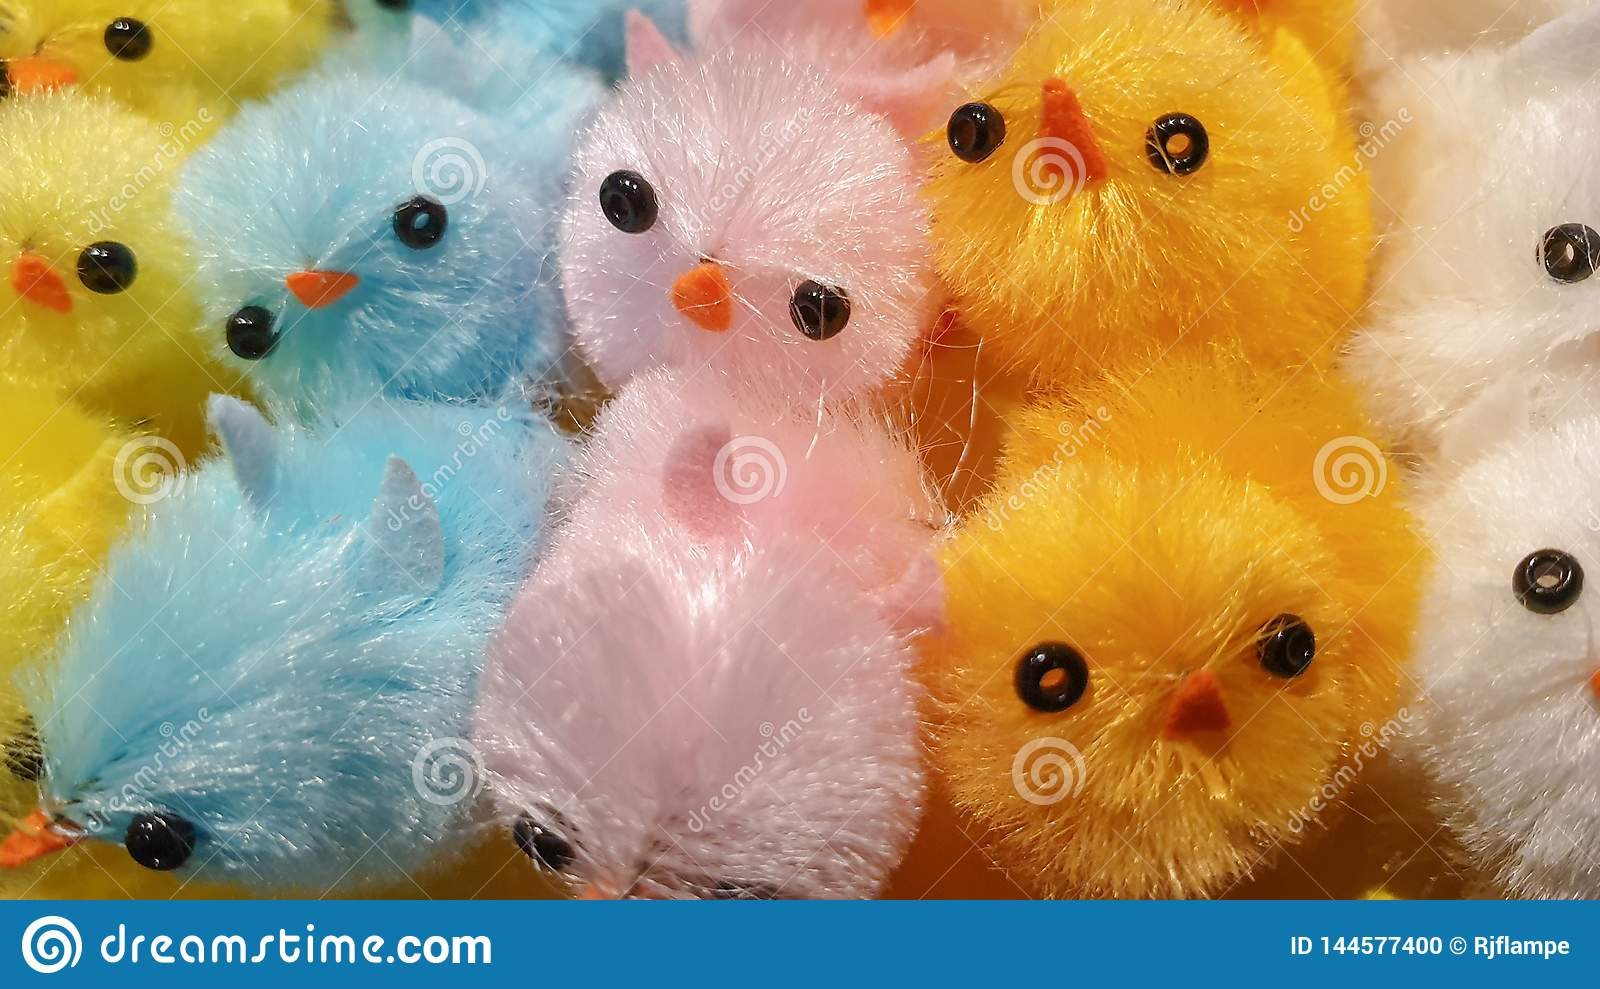 Easter Chick Chicken Decoration, Colorful Happy Fluffy